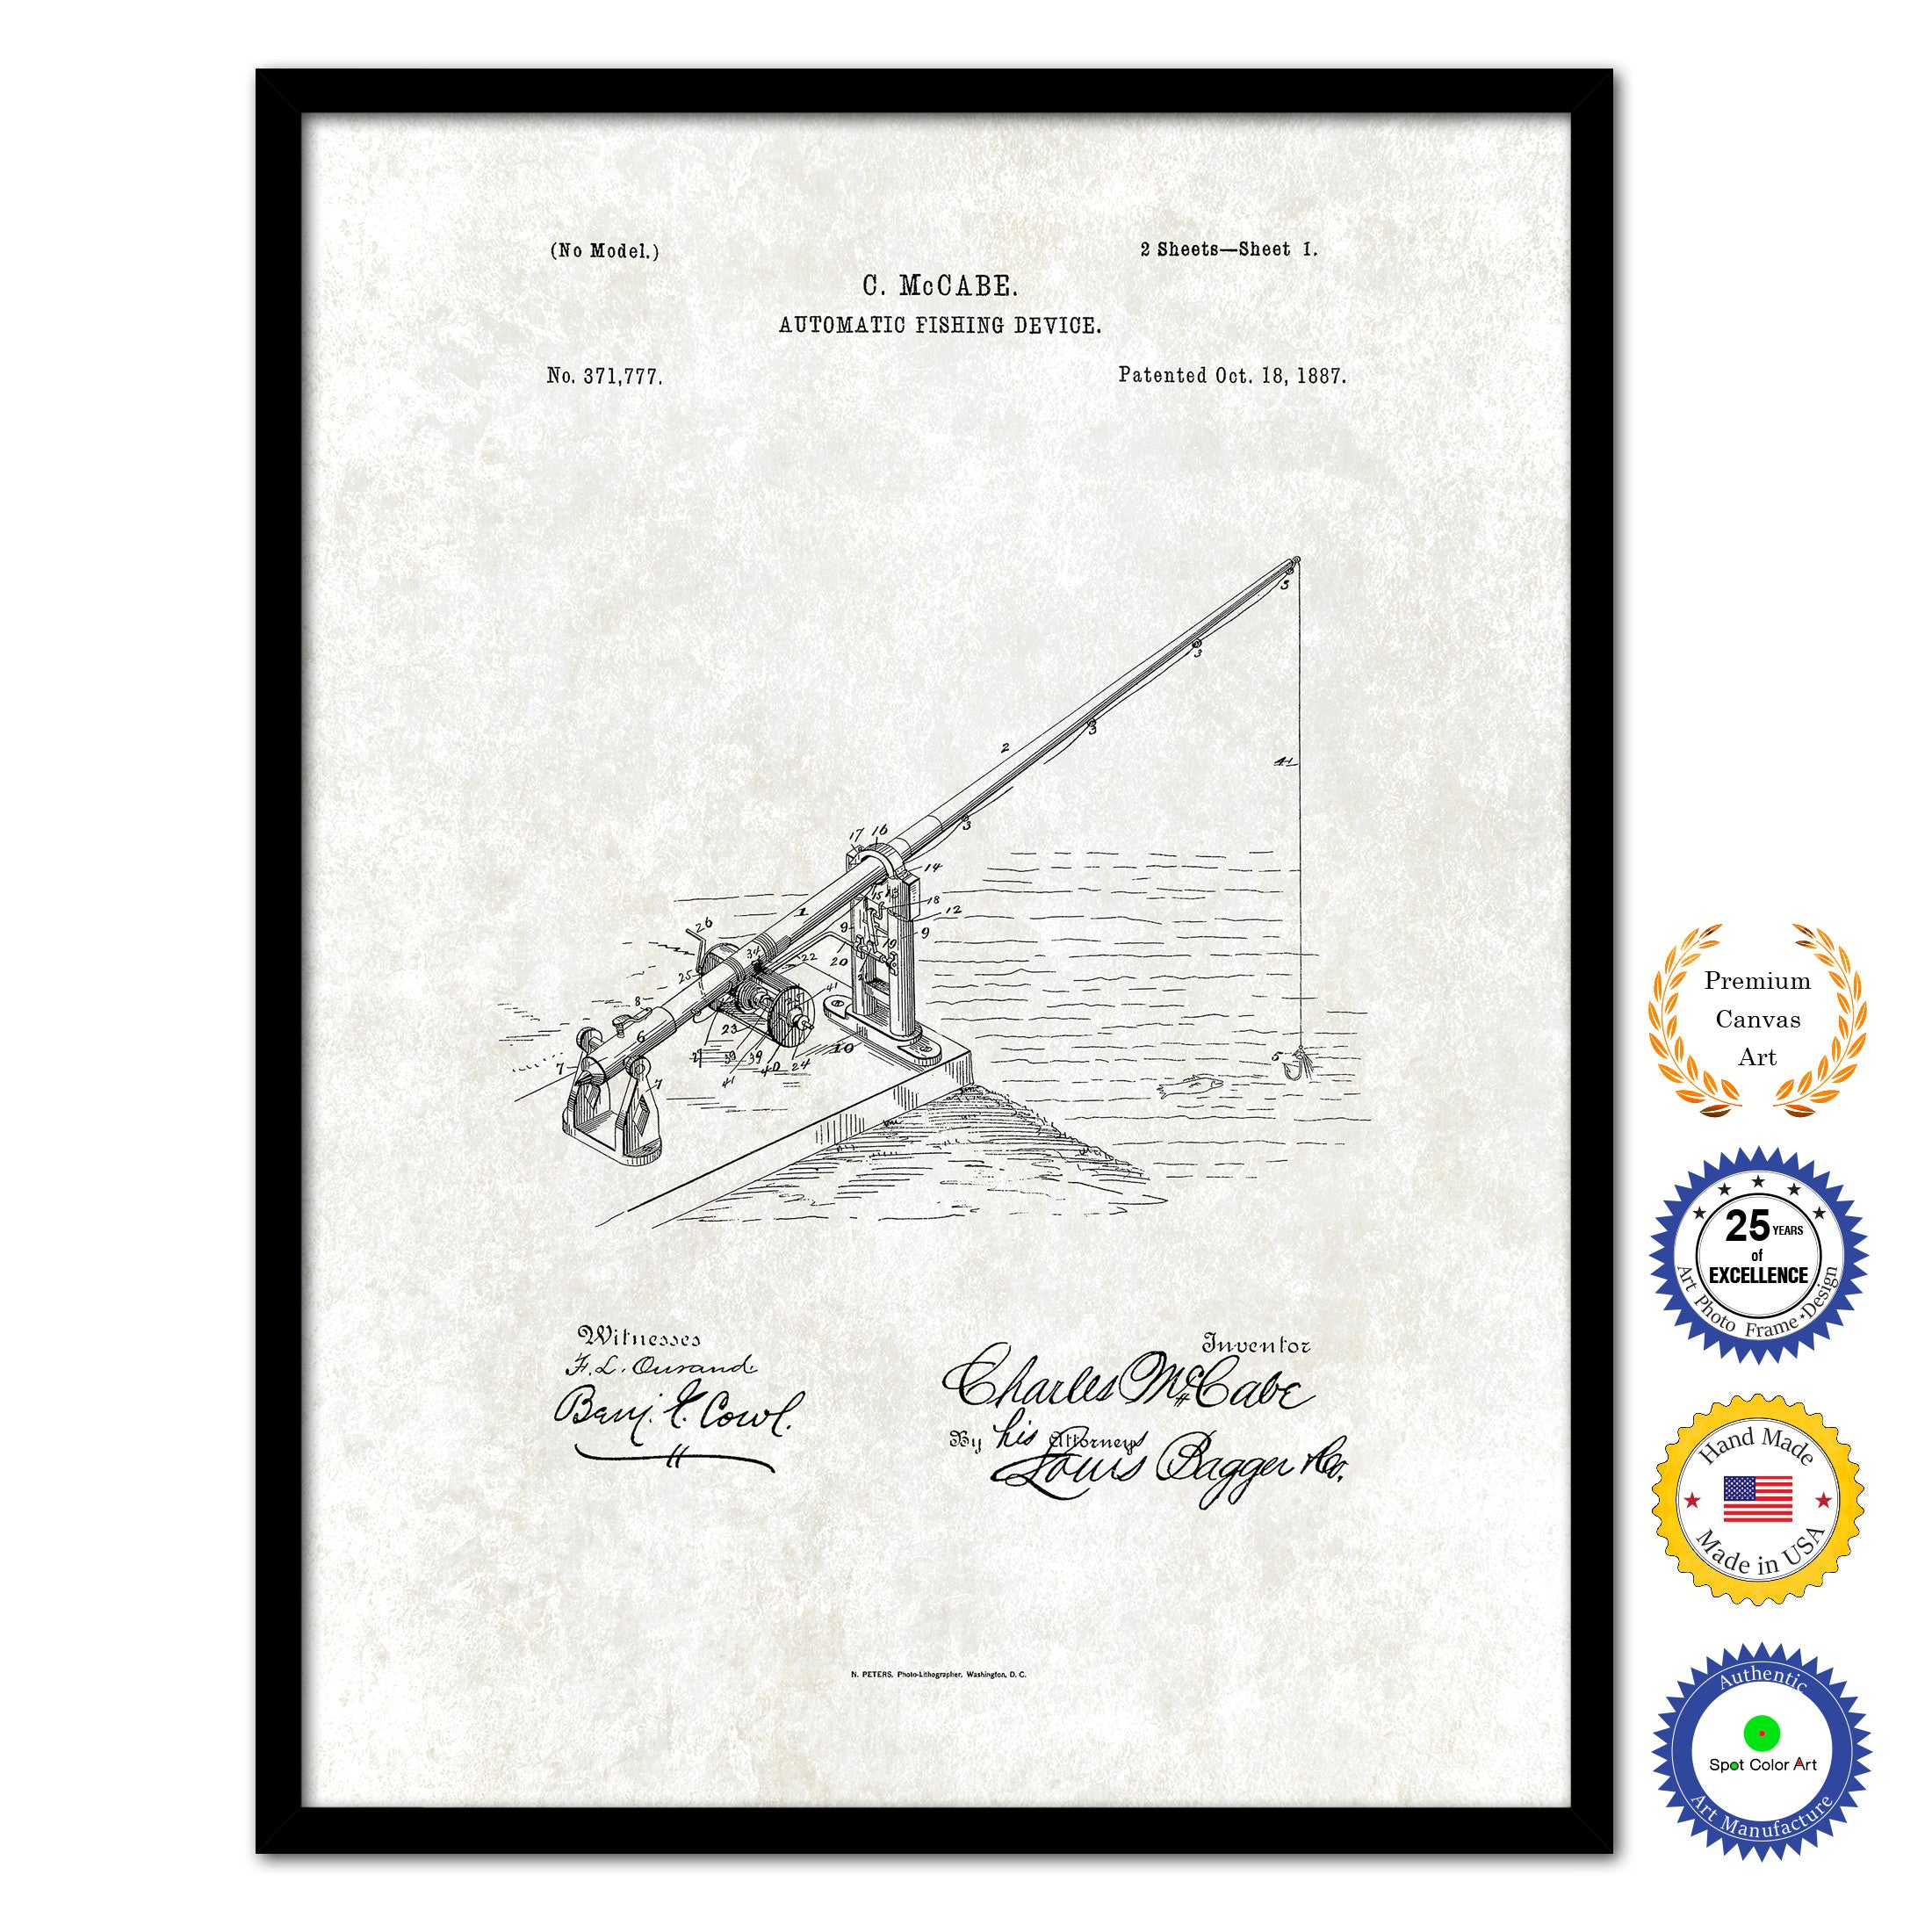 1887 Fishing Automatic Fishing Device Vintage Patent Artwork Black Framed  Canvas Print Home Office Decor Great For Fisherman Cabin Lake House